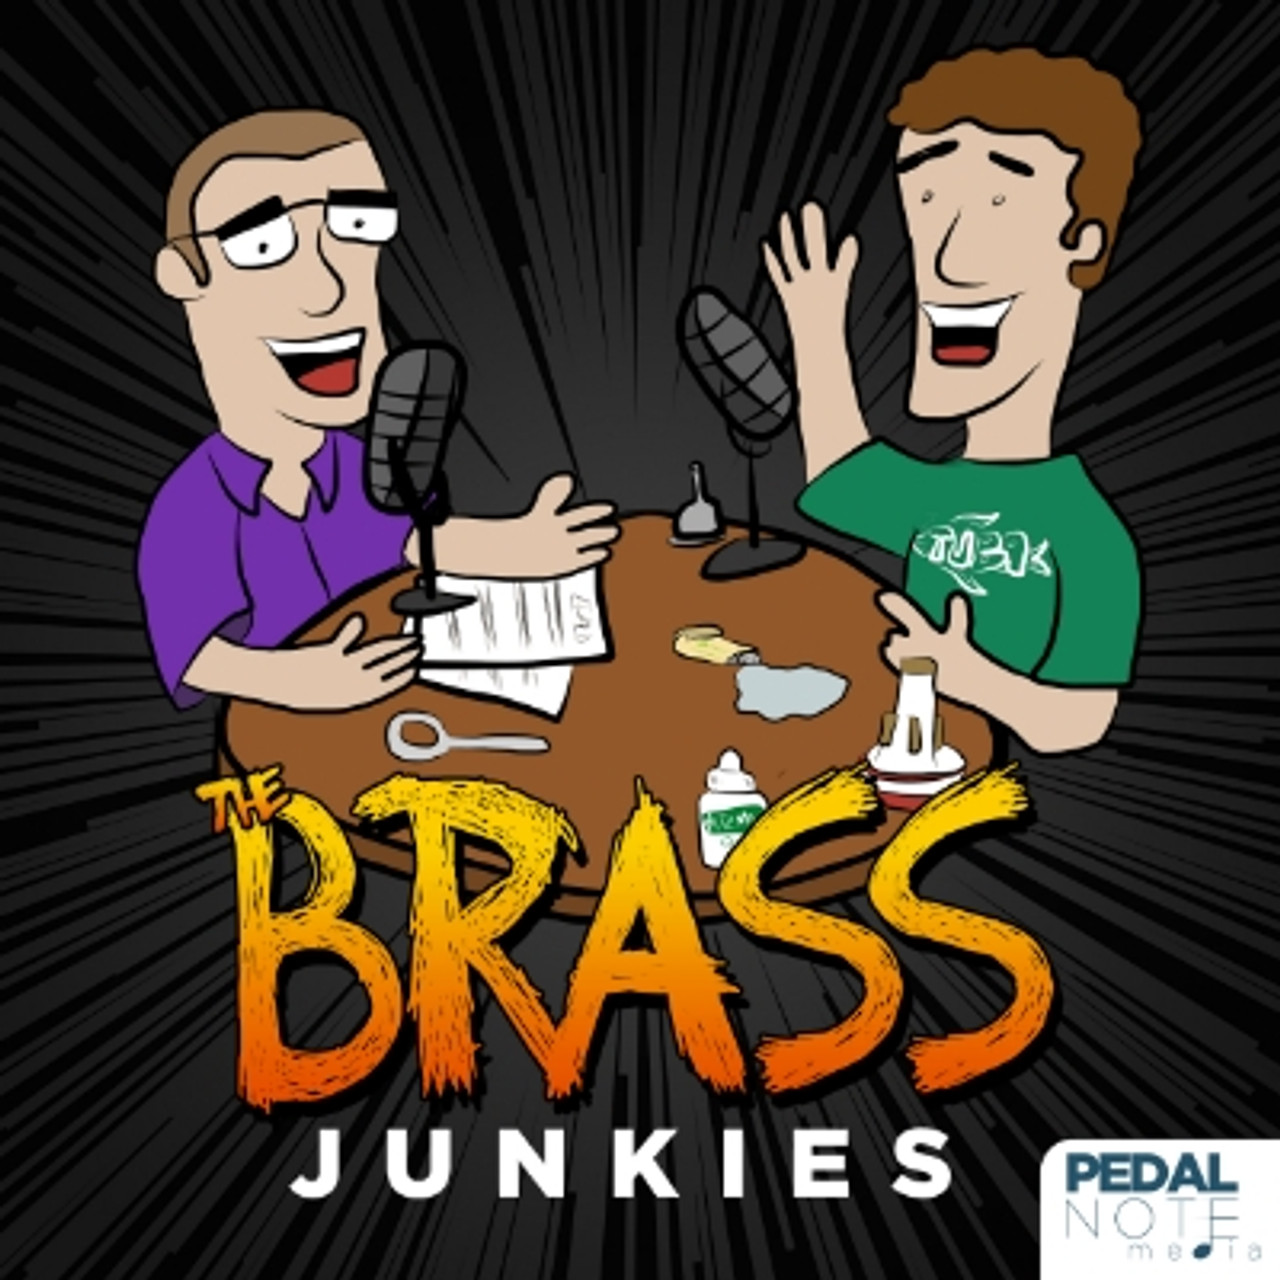 Check out my interview with the Brass Junkies!